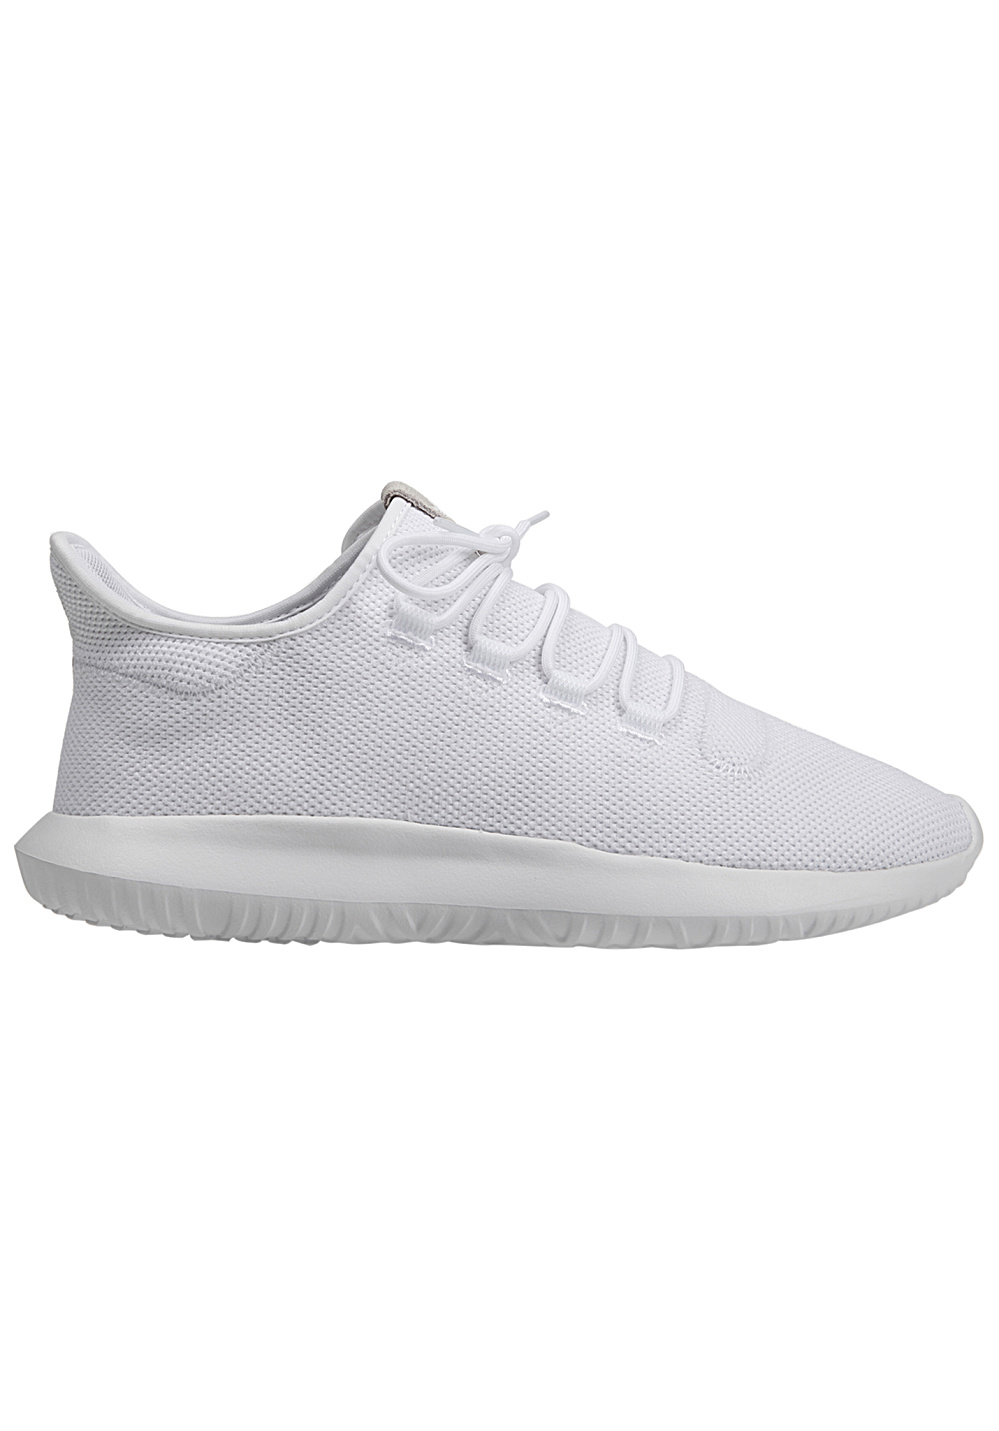 hot sale online 315e5 3b349 ADIDAS ORIGINALS Tubular Shadow - Sneakers for Men - White